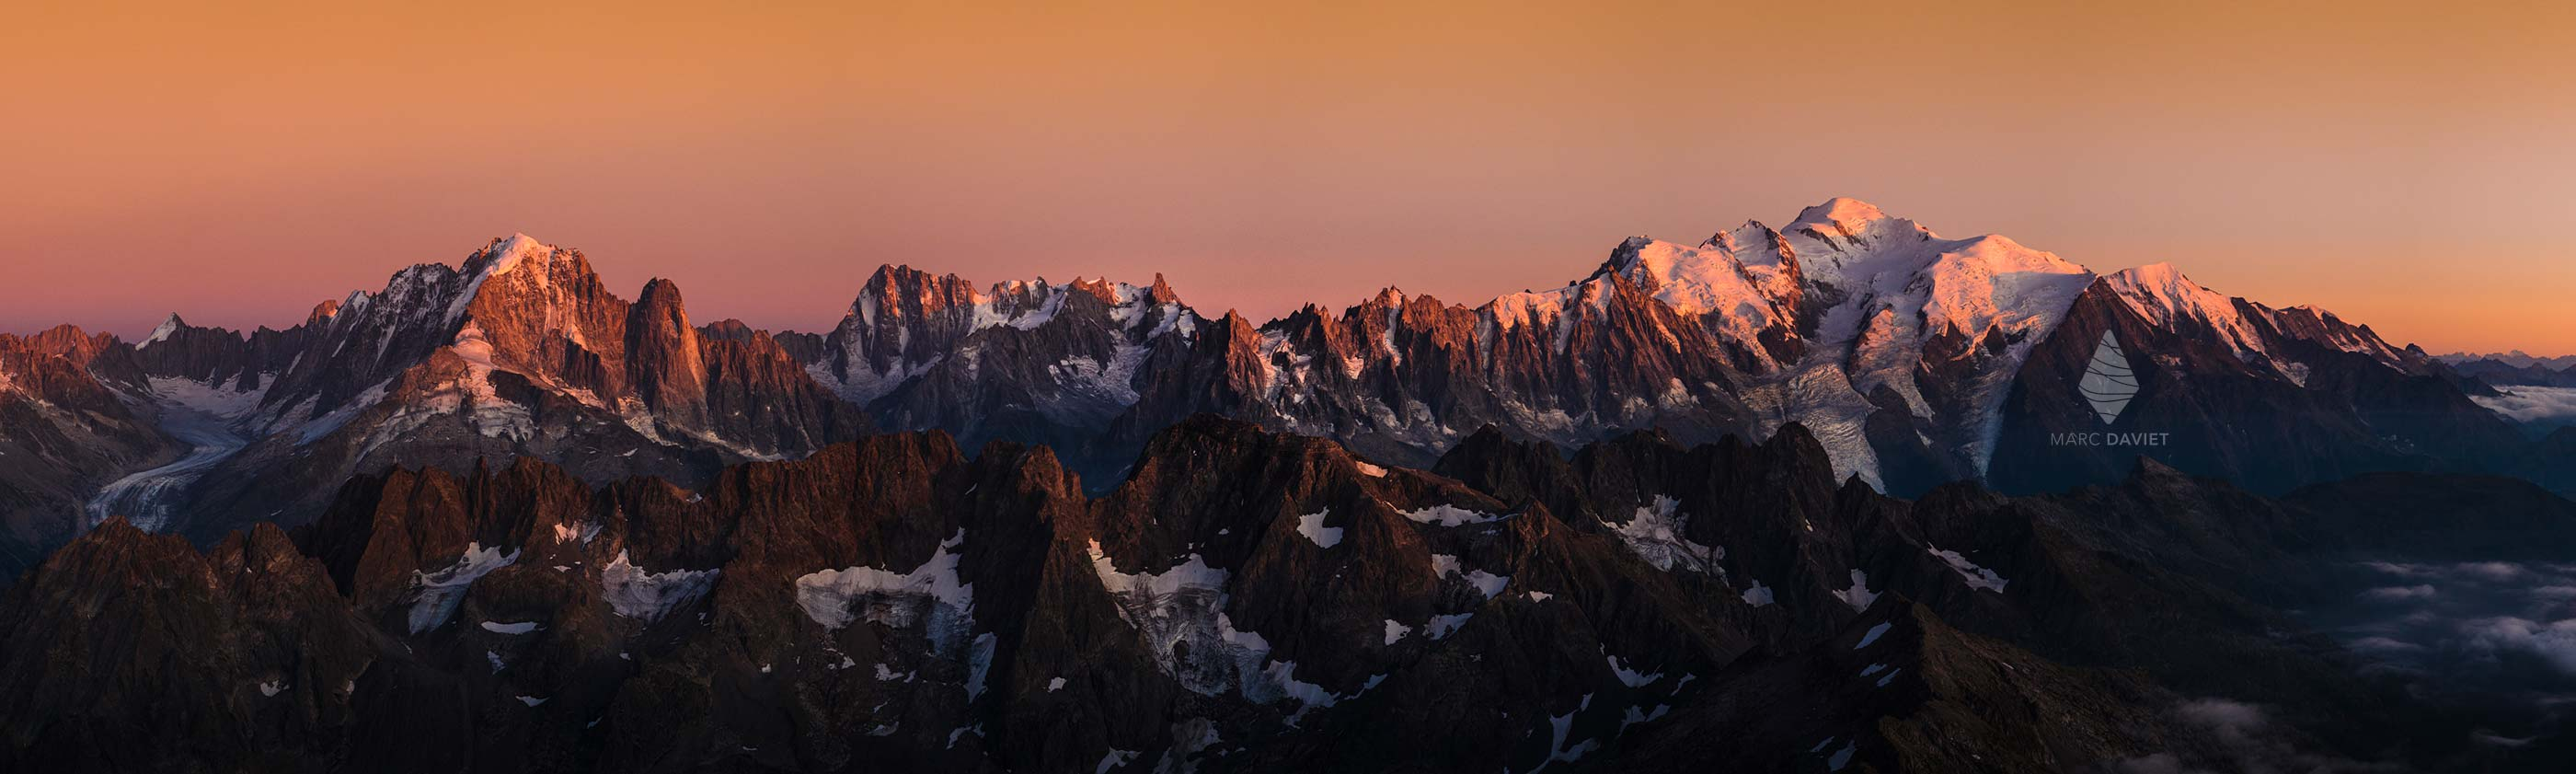 Mont-Blanc Massif at sunset